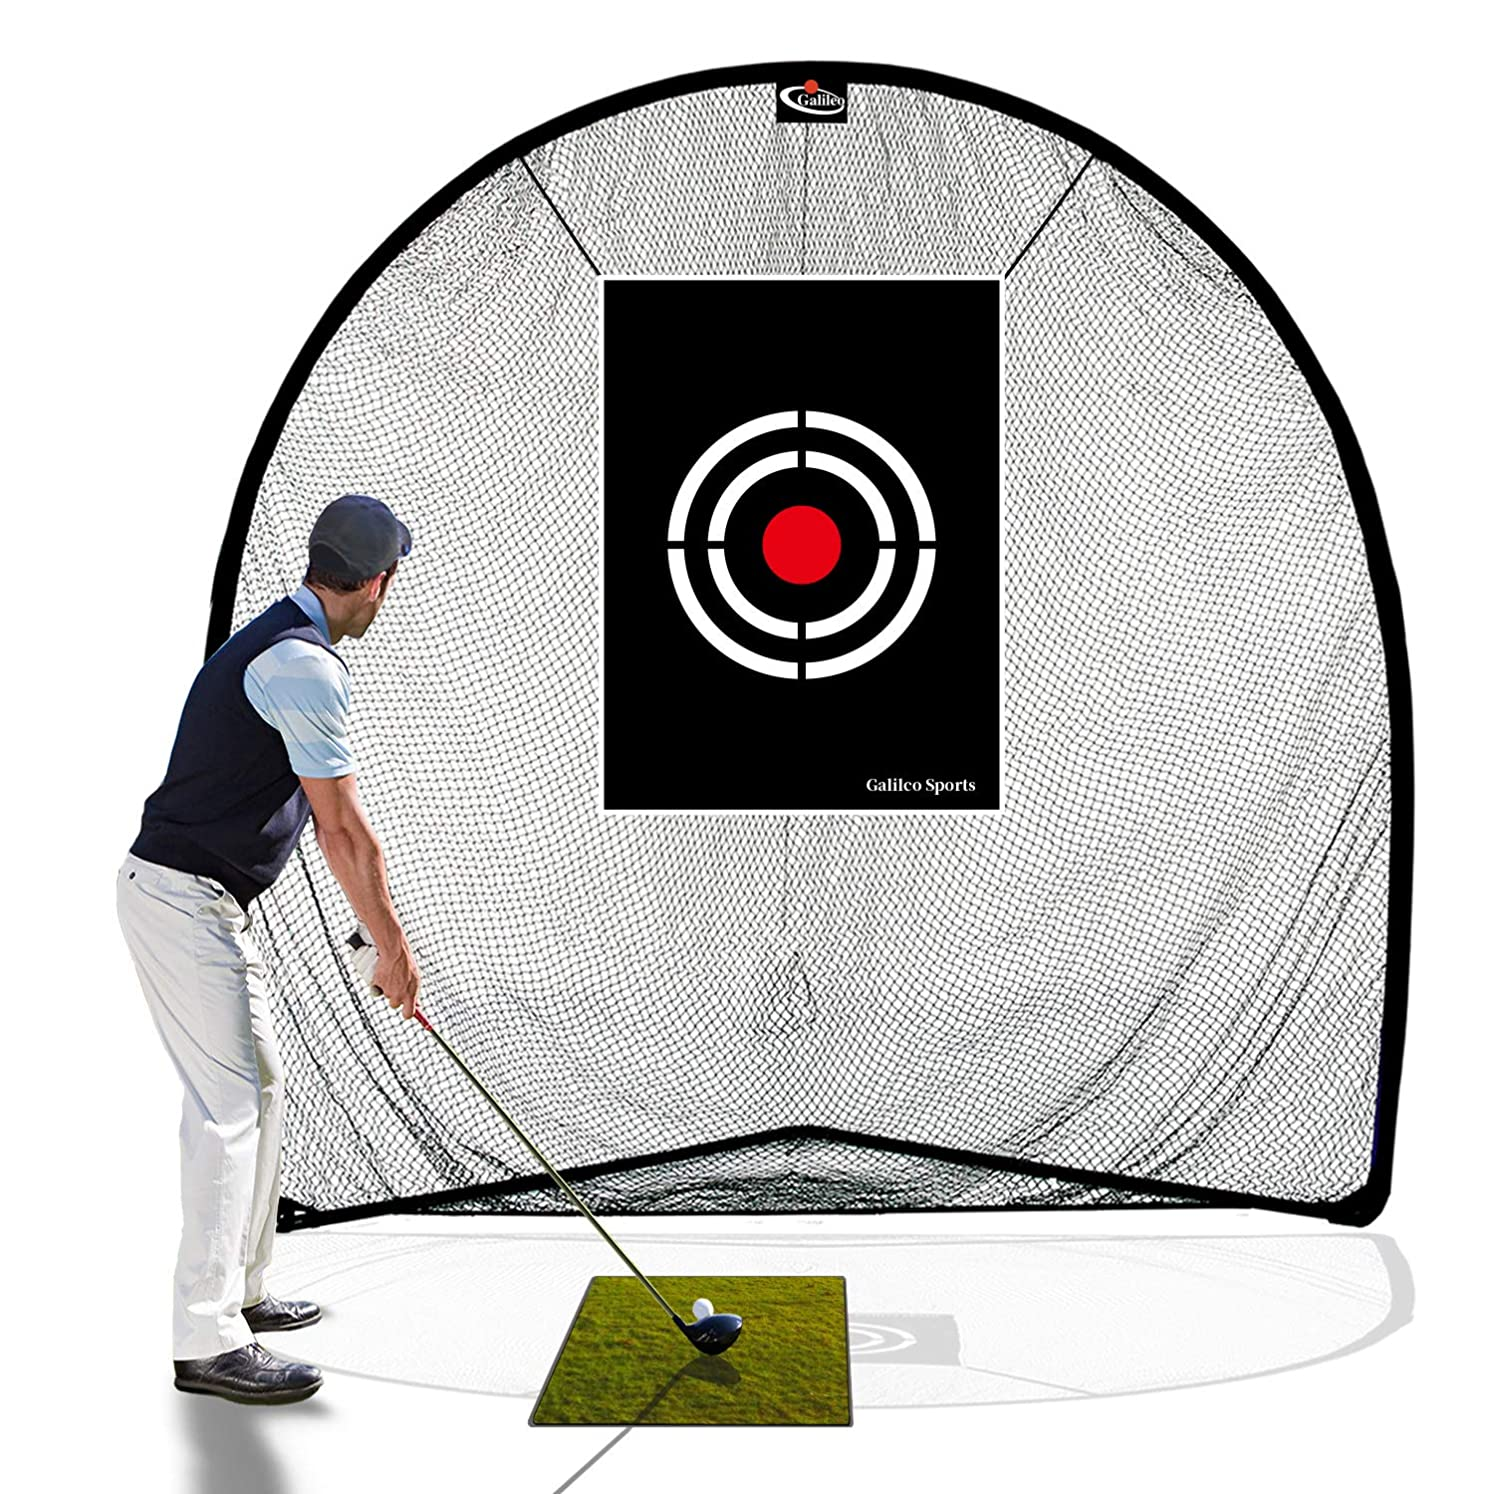 Galileo Golf Net Golf Hitting Nets for Backyard Driving Indoor Use 8'(L) X8'(H) X3'(W) Practice Portable Driving Range Indoor Golf Net Training Aids with Target and Carry Bag sdvjpsskf7662815